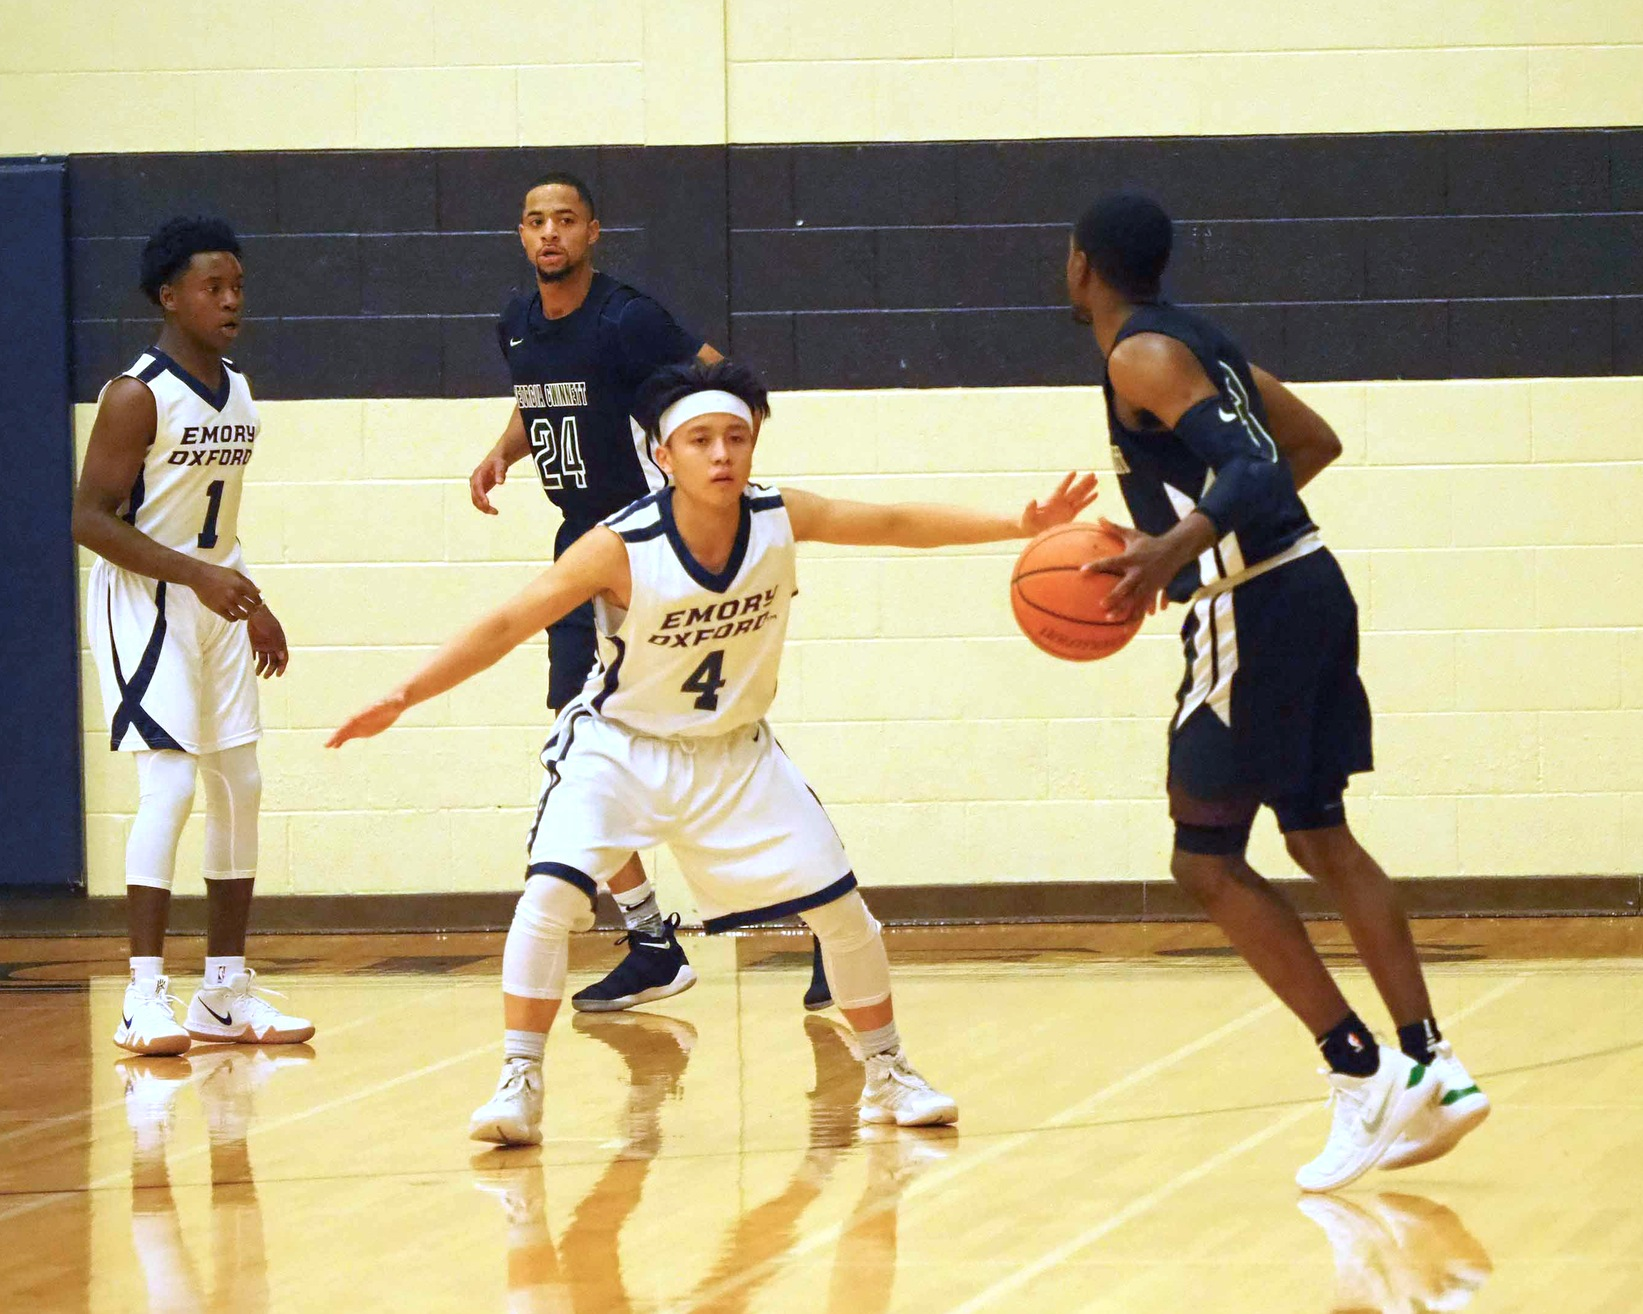 Emory Oxford Men's Basketball Loses To West Georgia